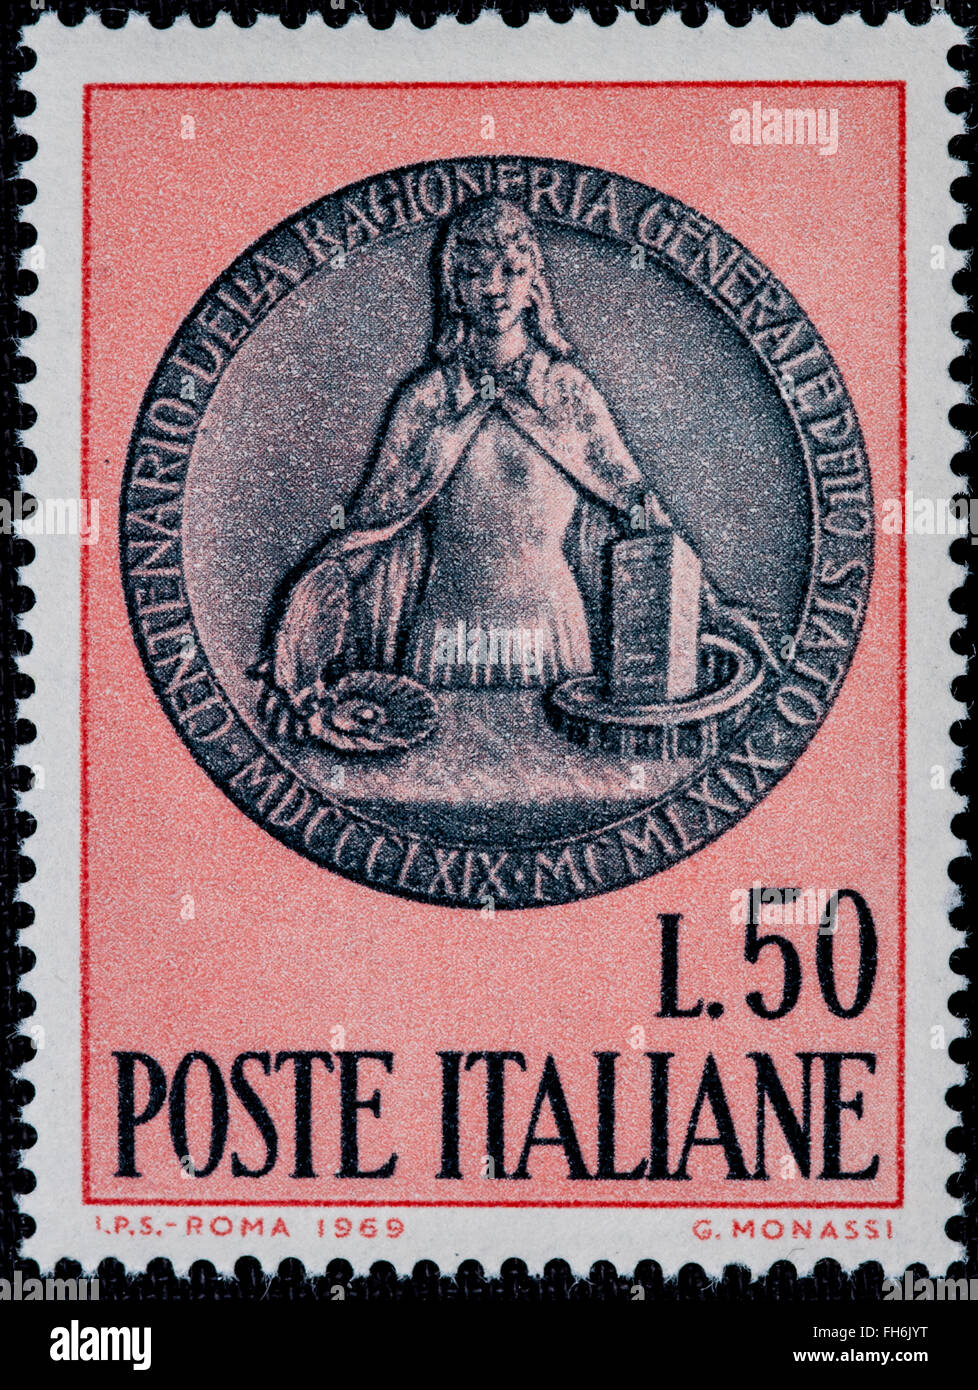 1969 - Italian mint stamp issued to commemorative. Lire 50 Stock Photo